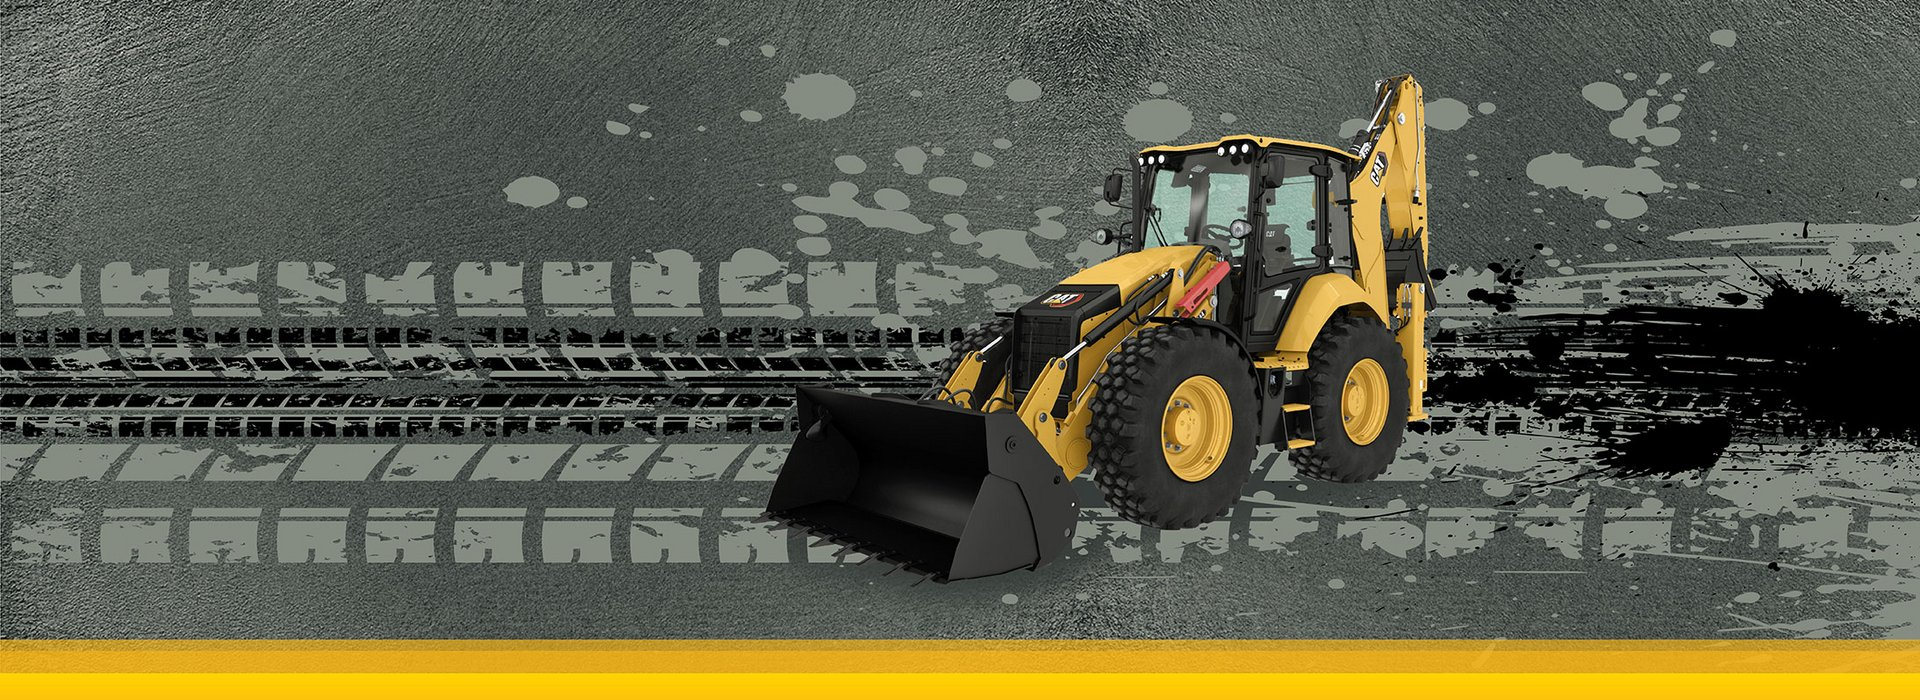 New Line Of Cat Backhoe Loaders Deliver Improved Performance And Better Fuel Efficiency Avesco Construction Equipment